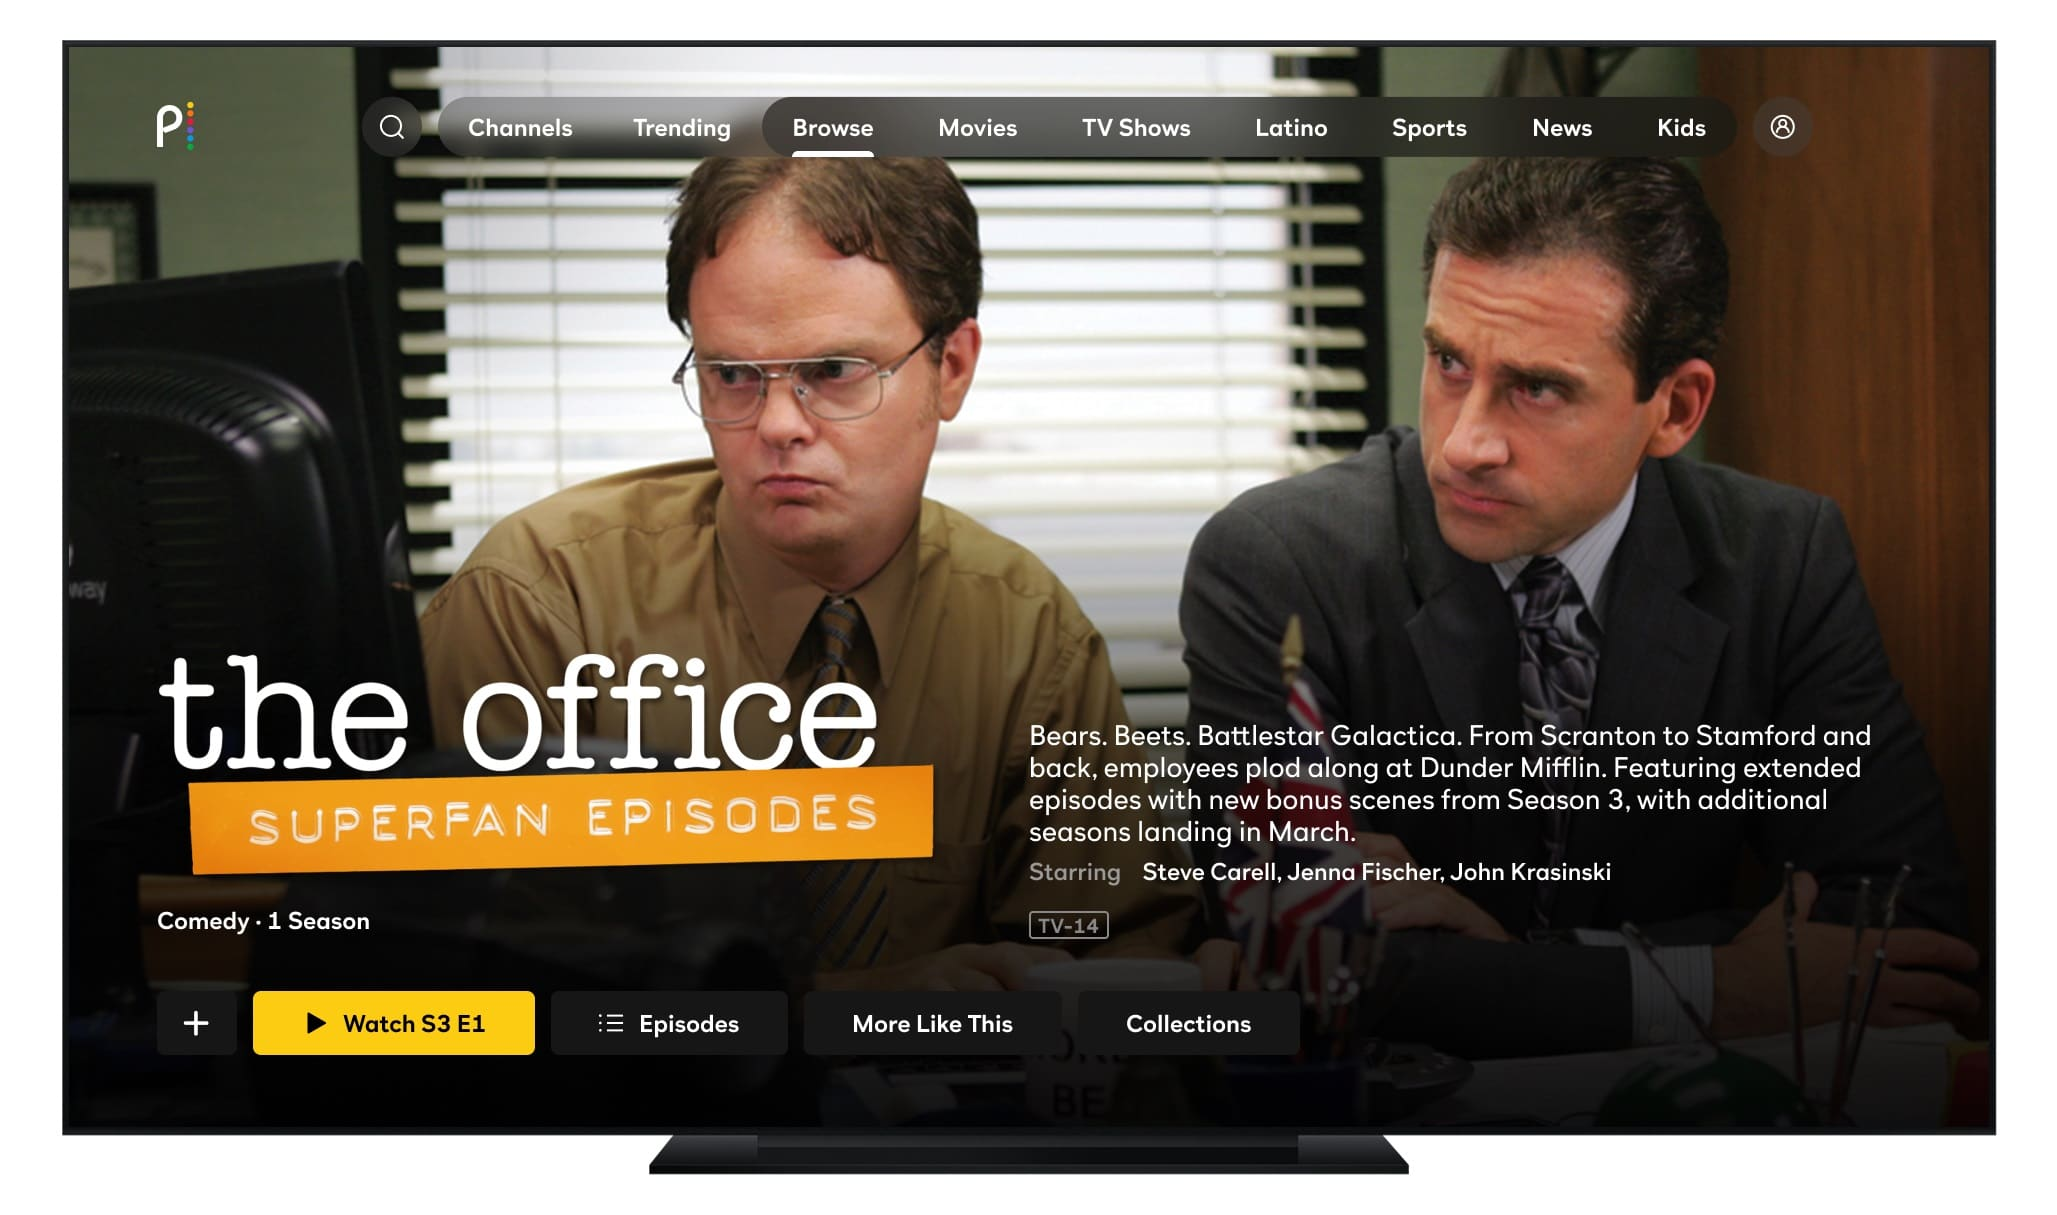 The Office Superfan Episodes on Peacock